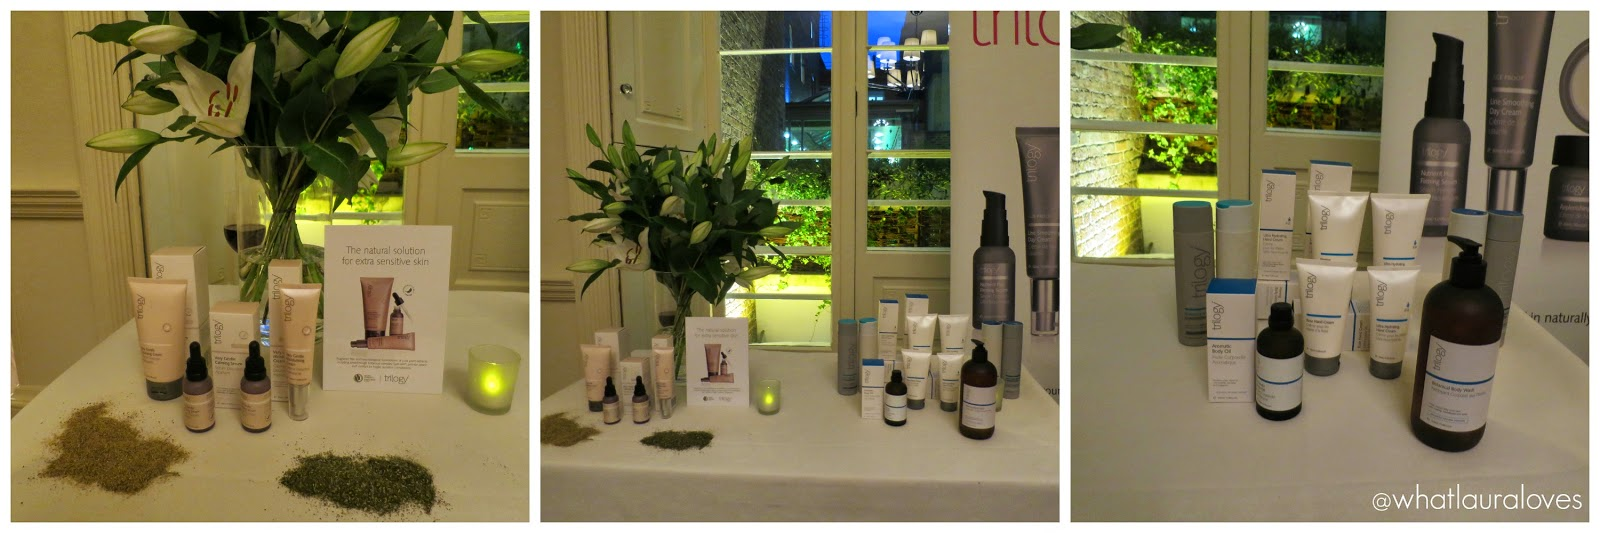 Trilogy Very Gentle Range and Body Care